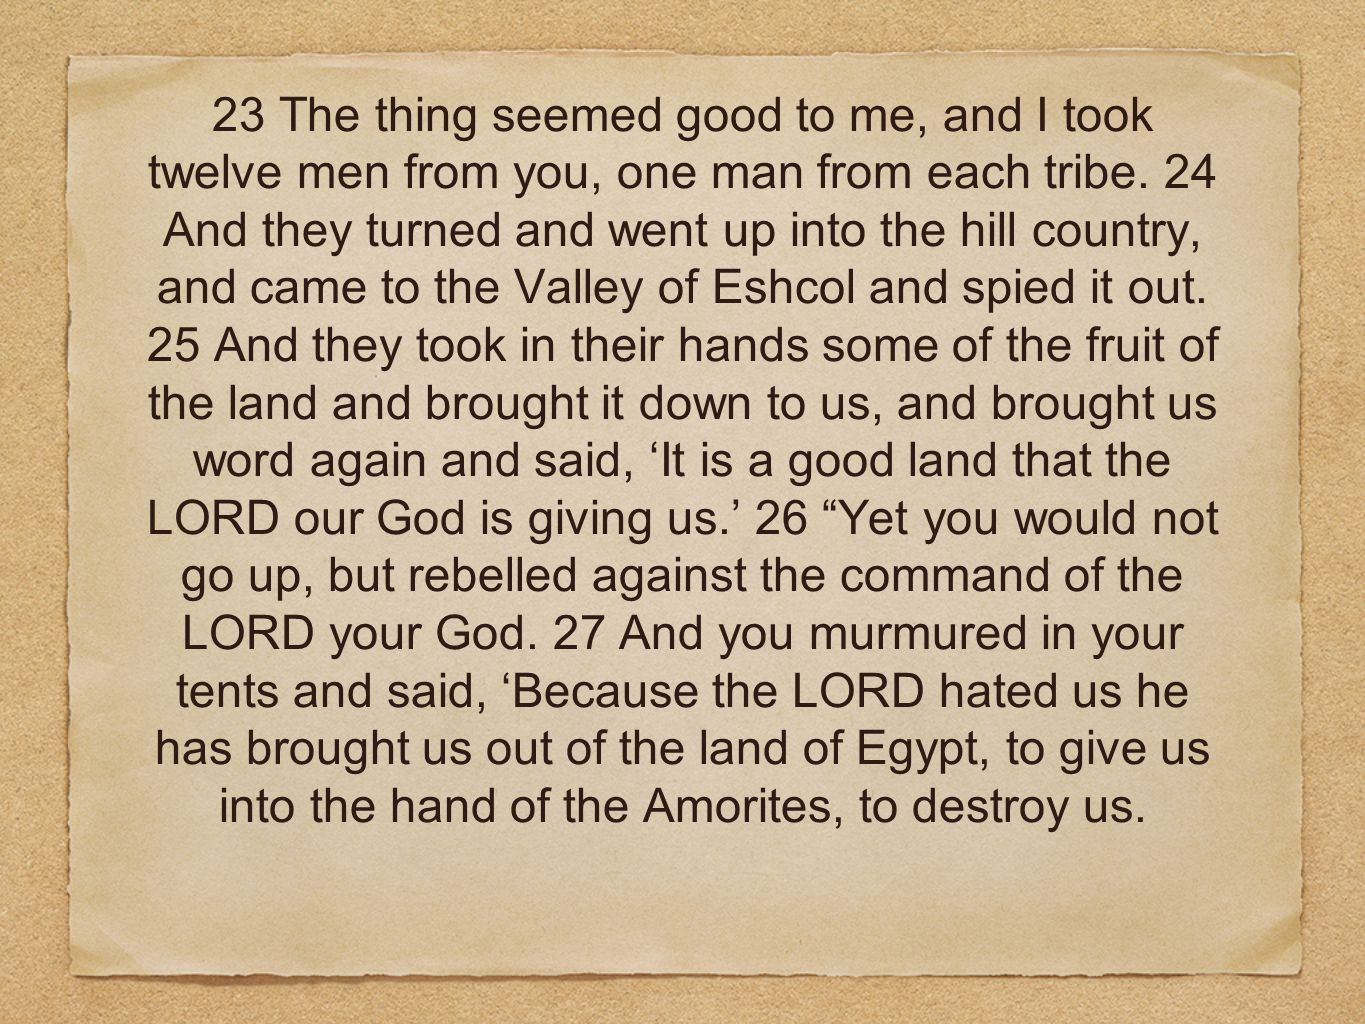 23 The thing seemed good to me, and I took twelve men from you, one man from each tribe.